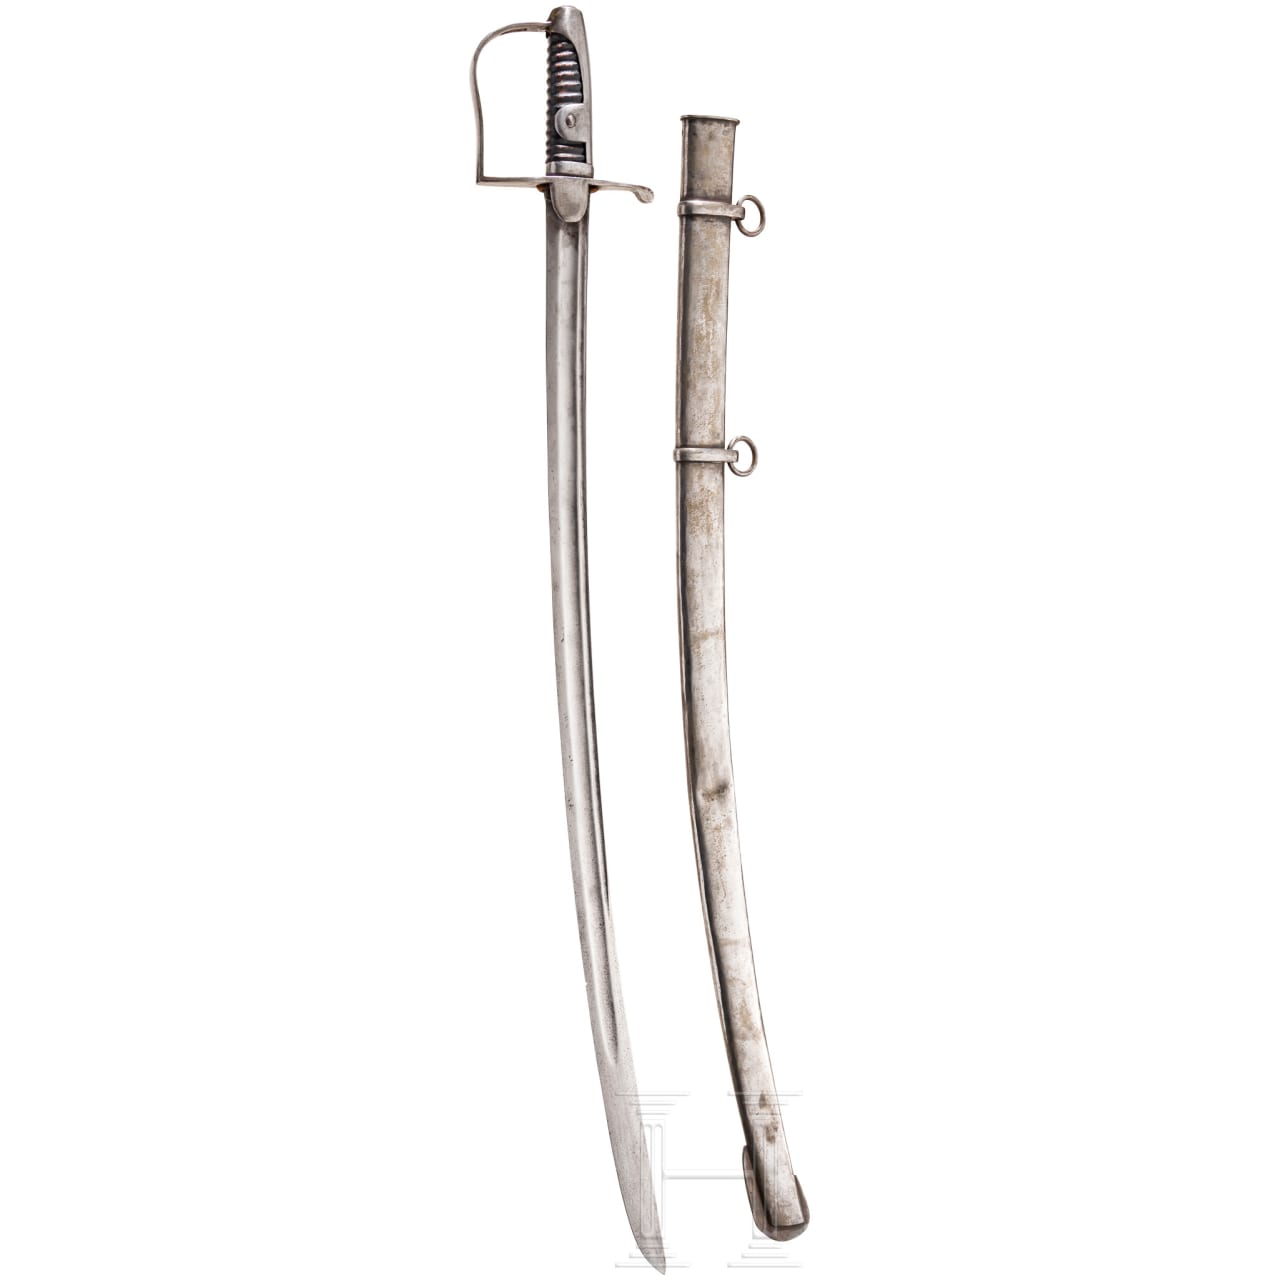 Sabre for mounted troops, 1st half of the 19th century